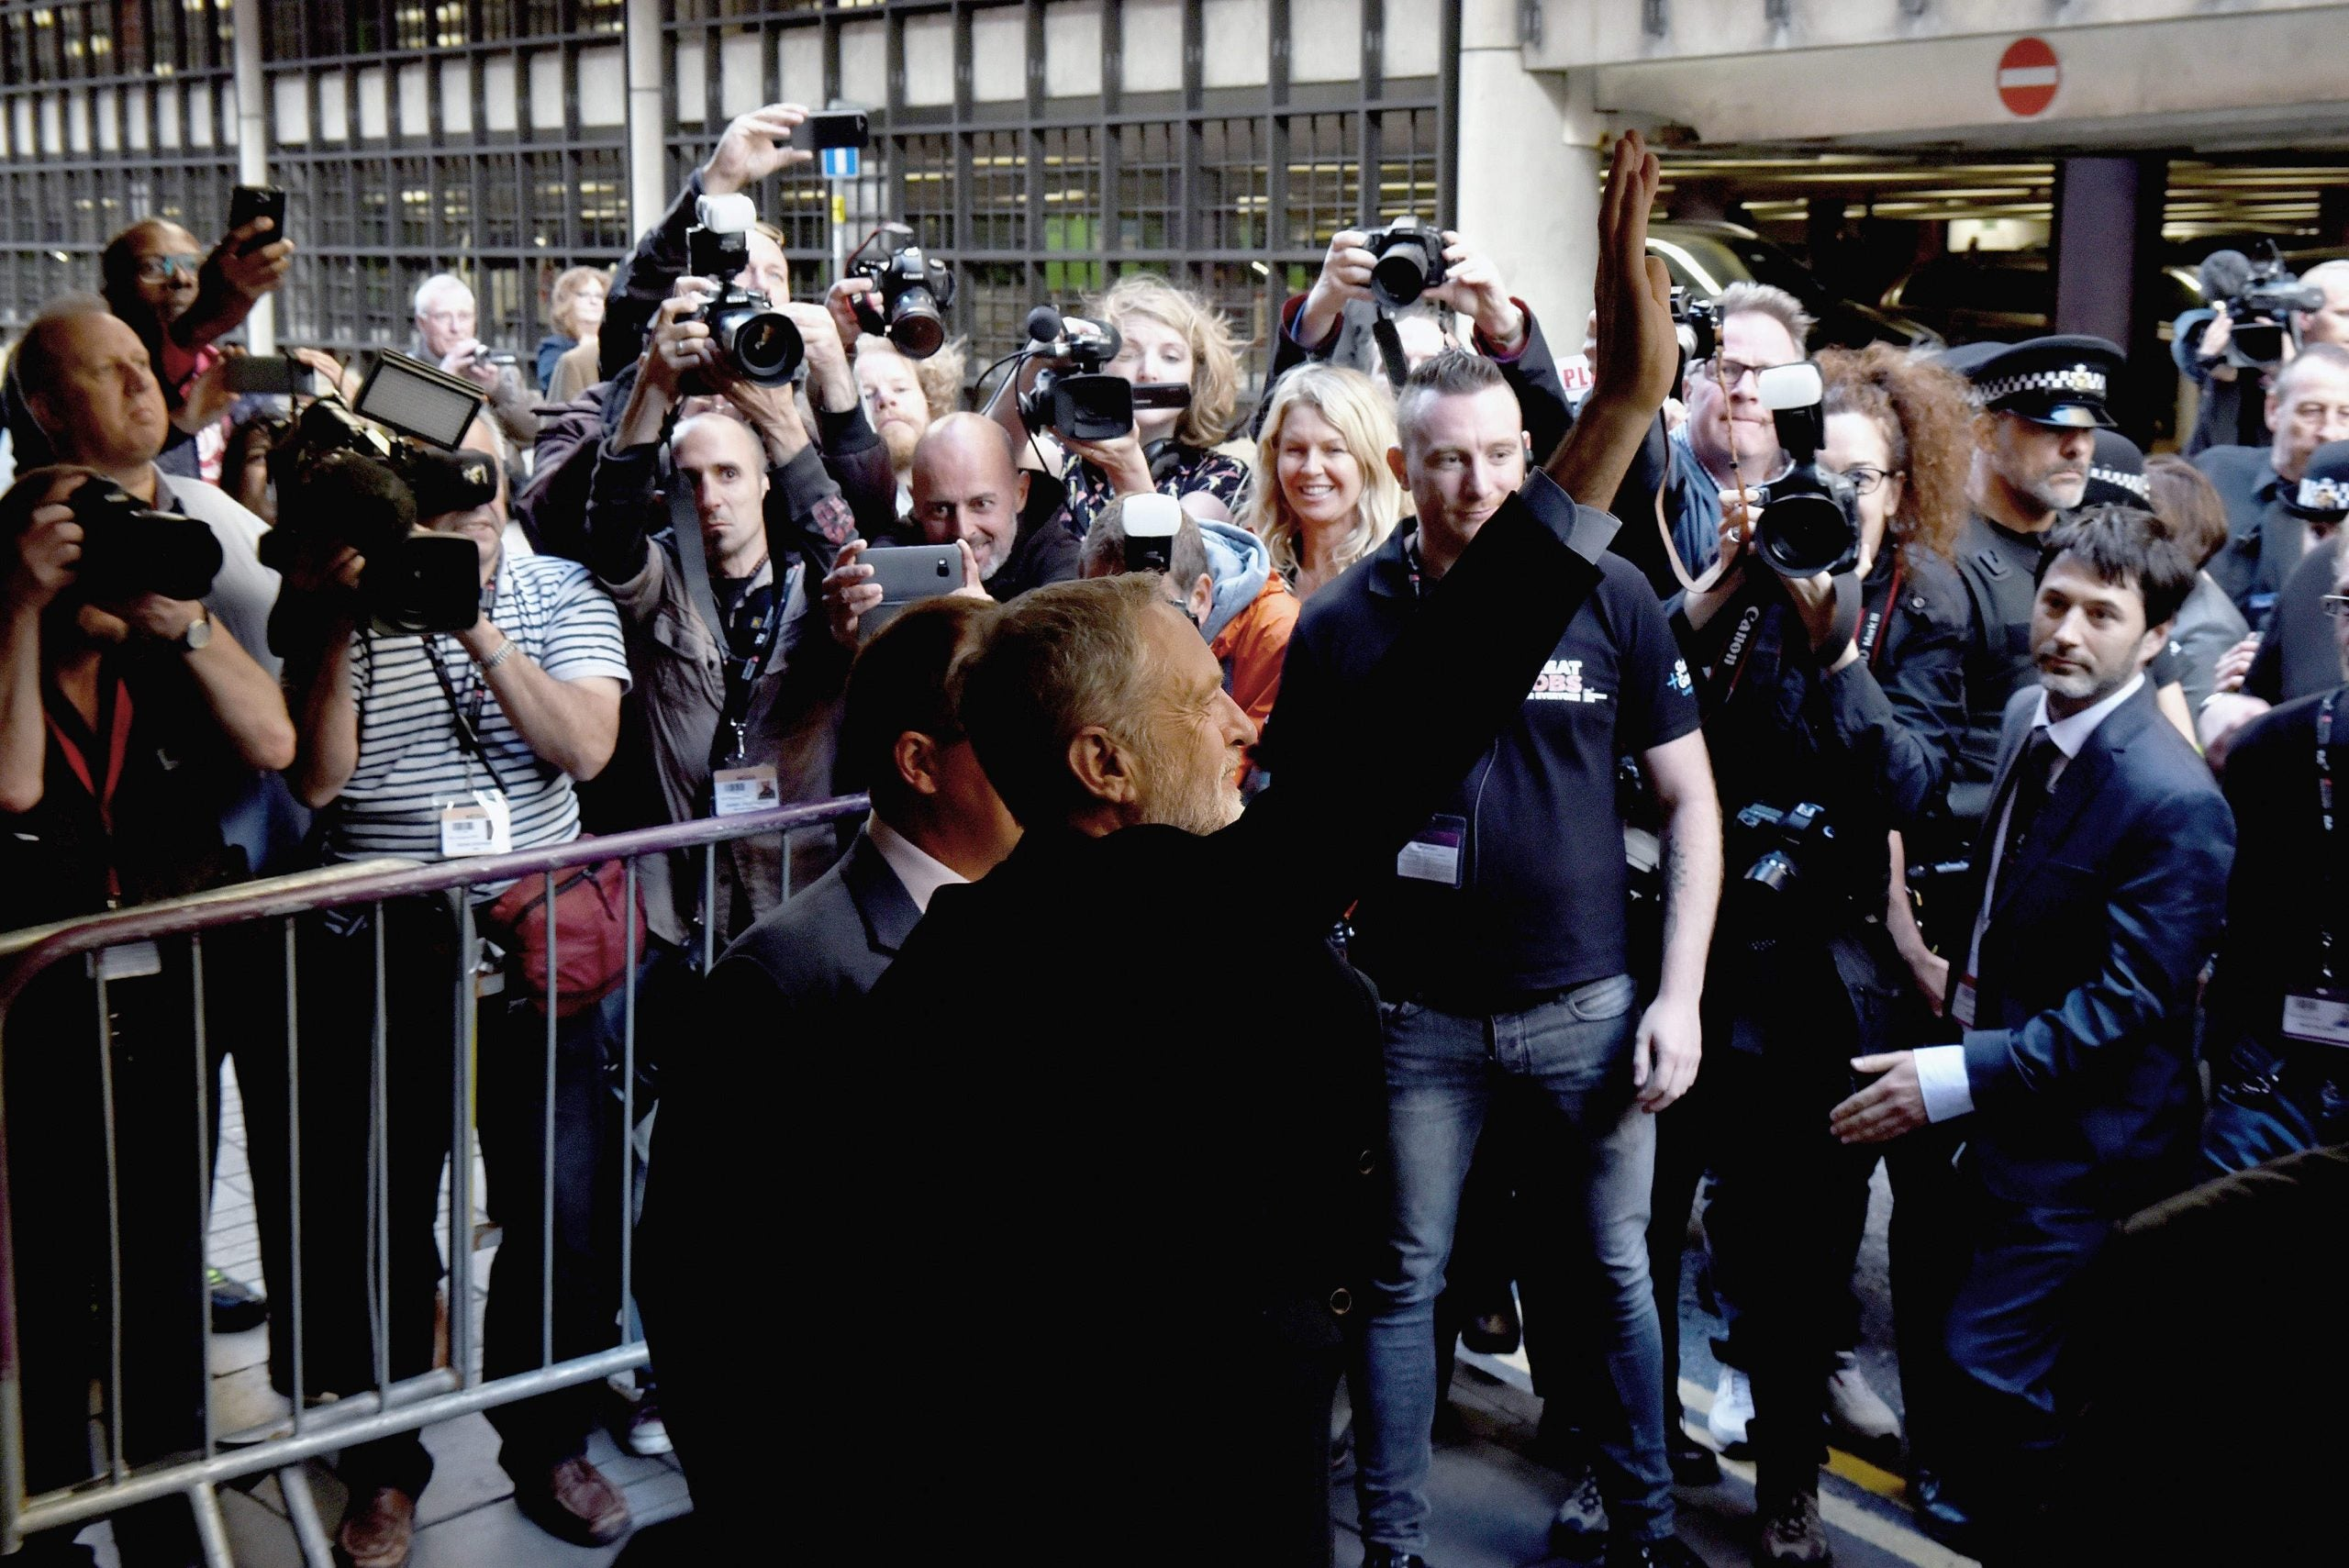 Jeremy Corbyn faces a viciously hostile press – but shutting out the media won't help